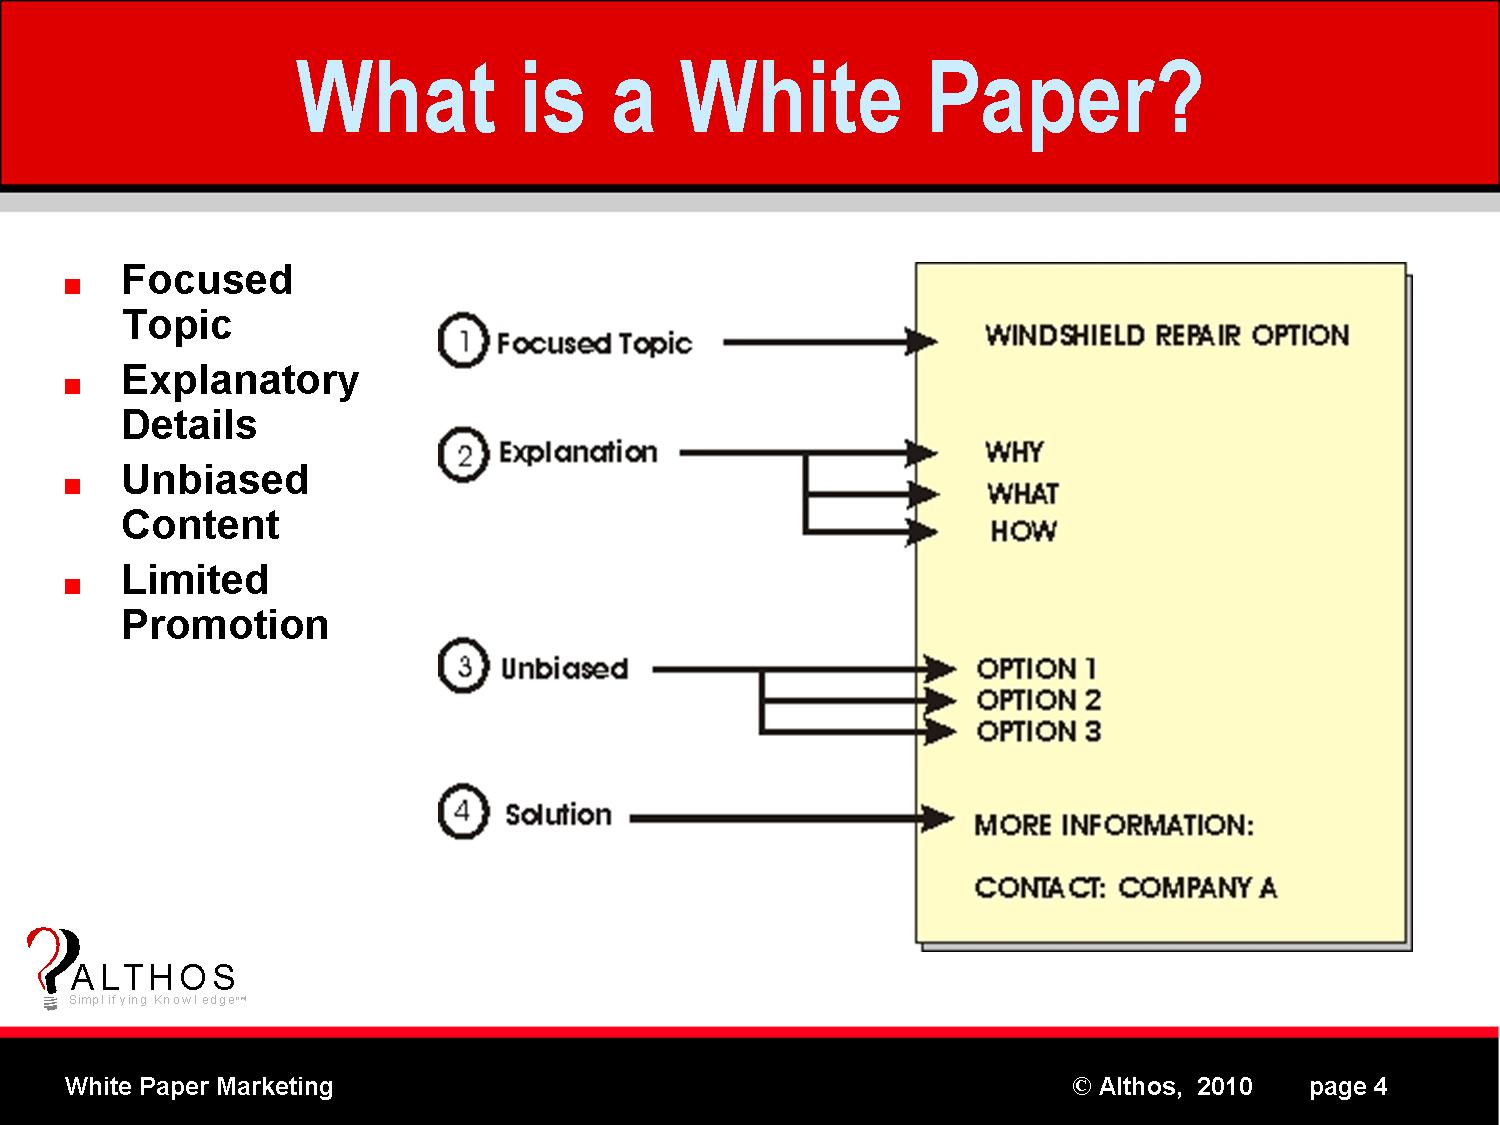 White Paper Marketing | What is a White Paper?